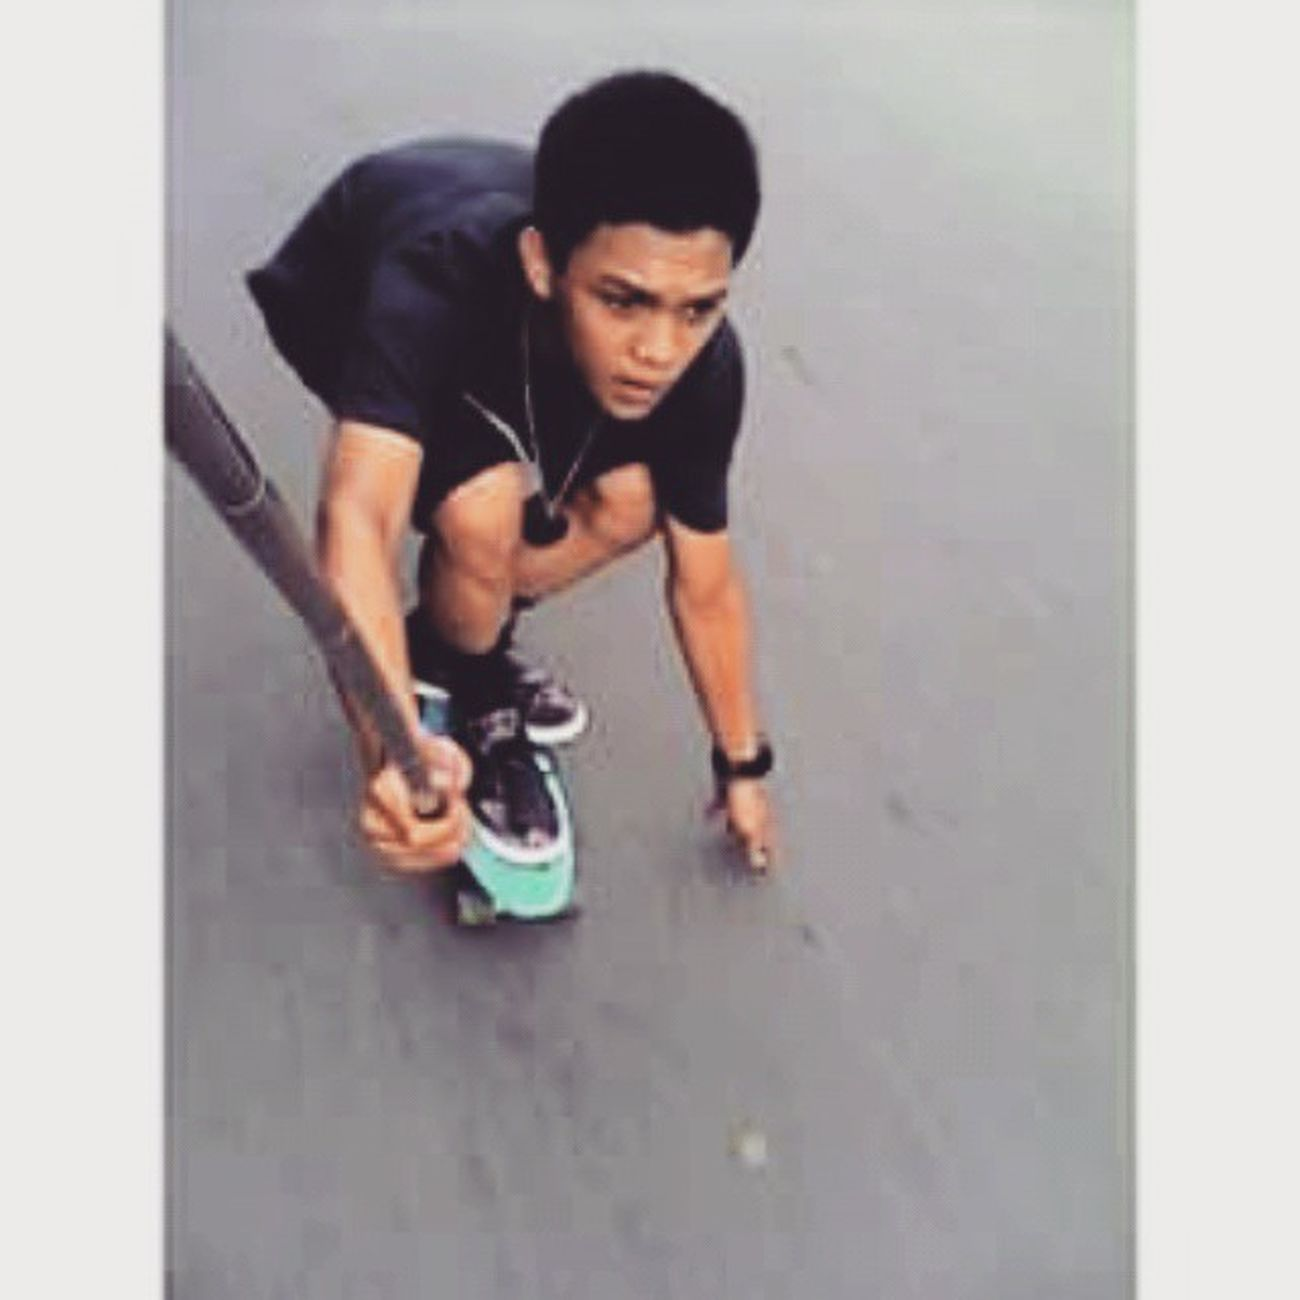 Skate safe, enjoy skatin' Skate for FUN na for FAME Pennyboard Alliance Happy CRUISINTUGATOG